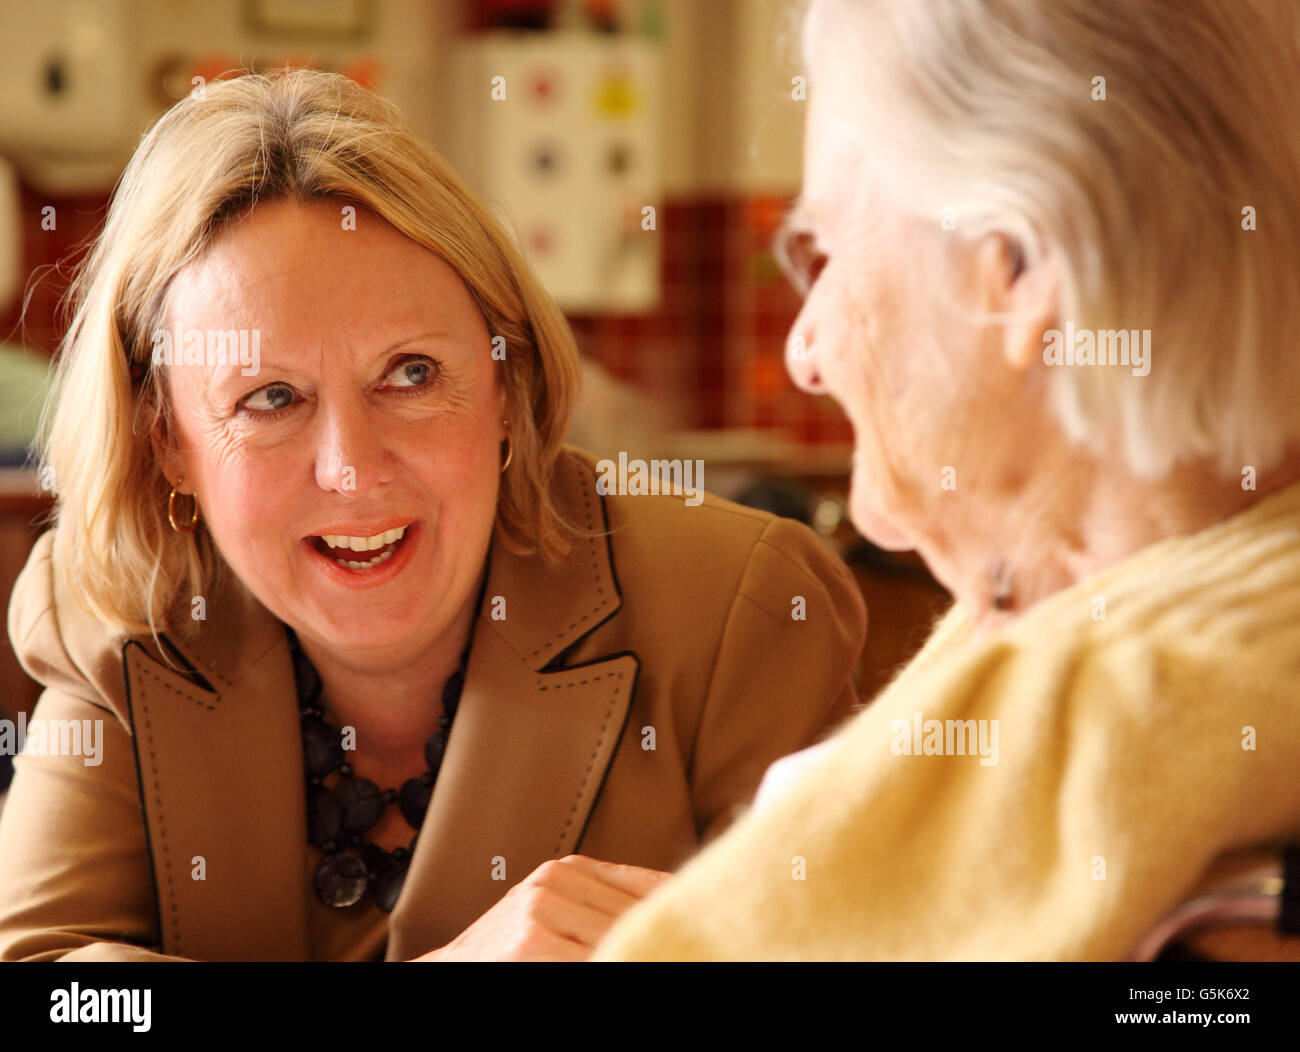 Lorely Jane Burt, Baroness Burt of Solihull, ex Liberal Democrat Member of Parliament for Solihull, chats to a pensioner - Stock Image